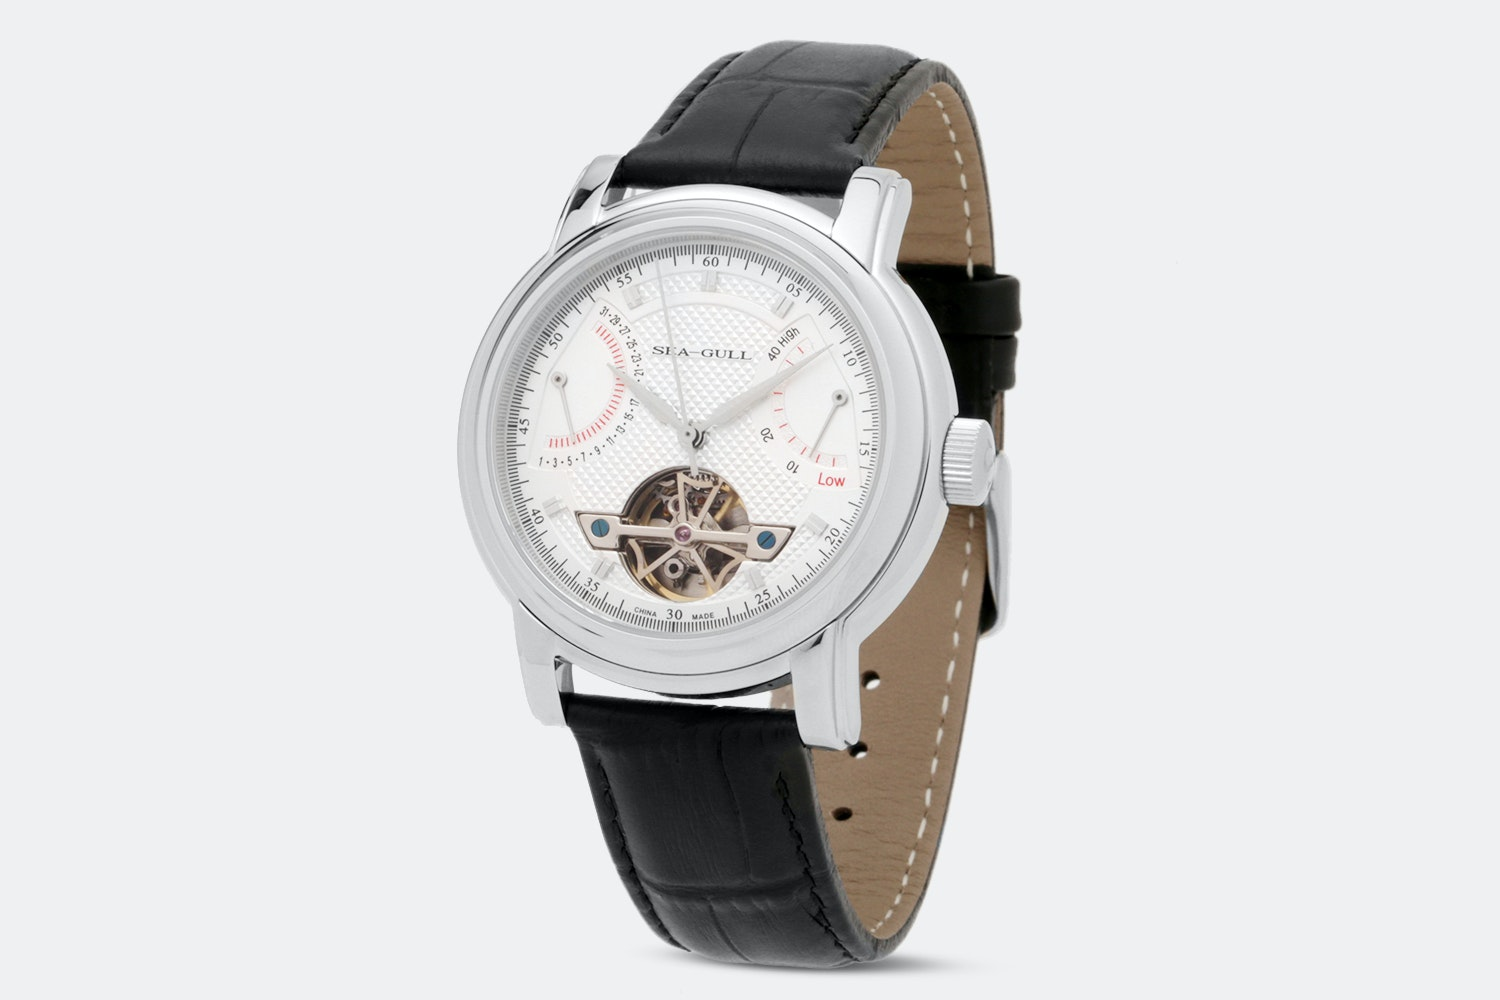 Sea-Gull D819.626 Automatic Watch